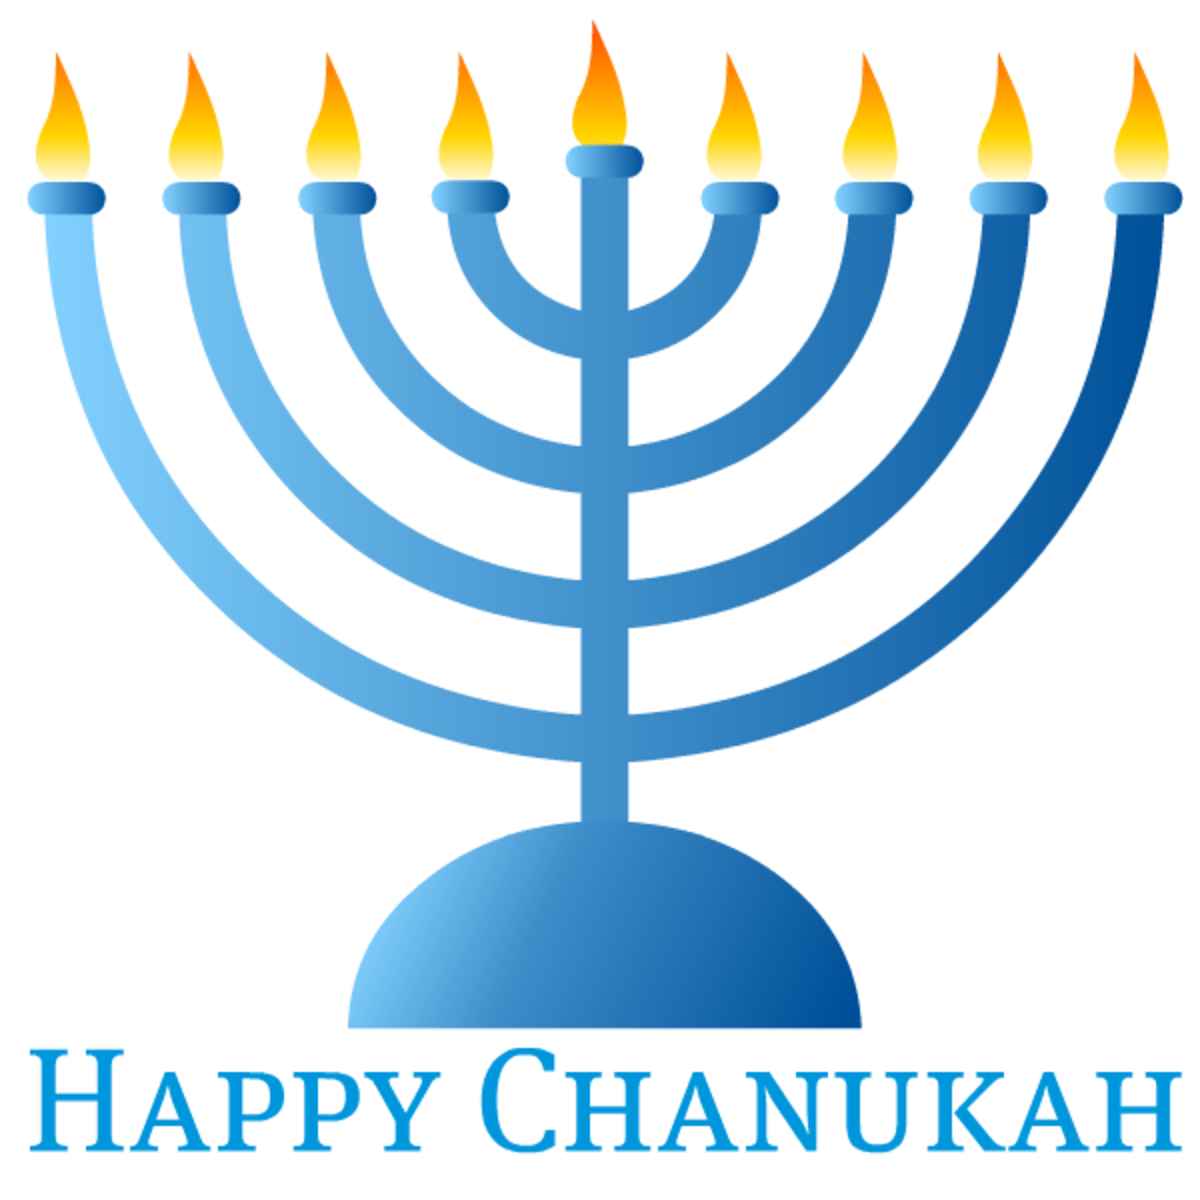 Chanukah art: menorah